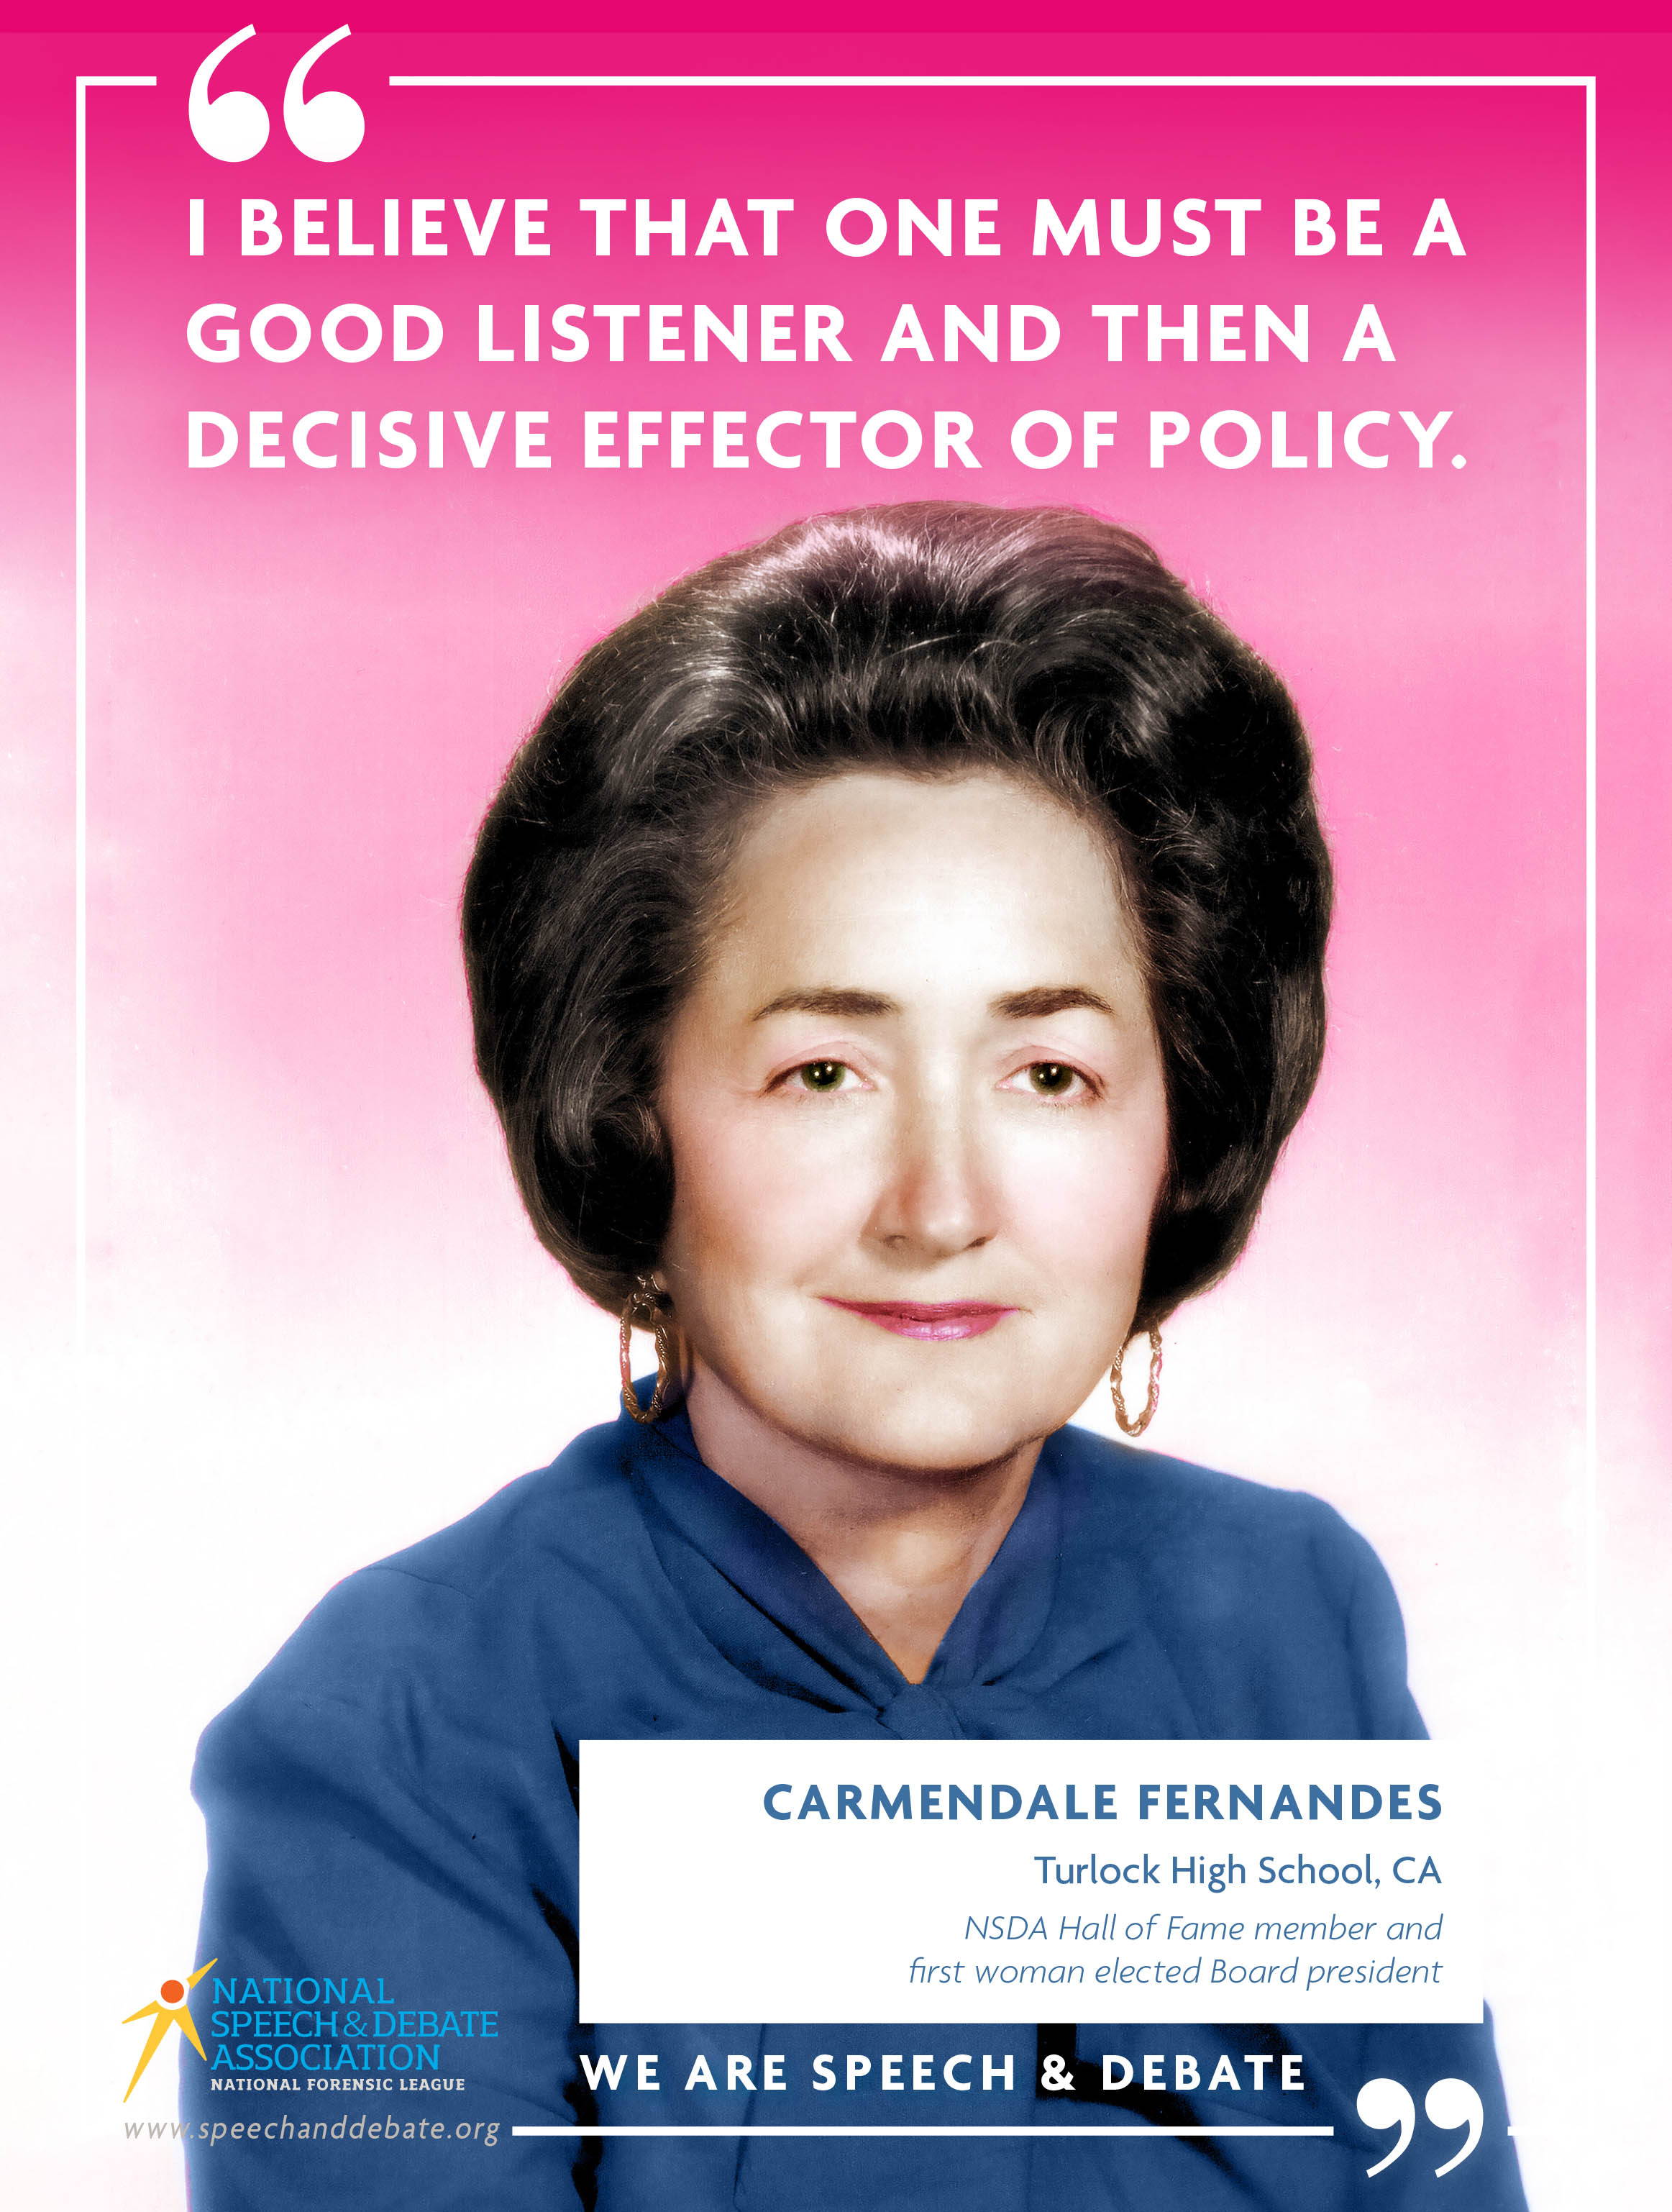 """I BELIEVE THAT ONE MUST BE A GOOD LISTENER AND THEN A DECISIVE EFFECTOR OF POLICY."" - Carmendale Fernandes"